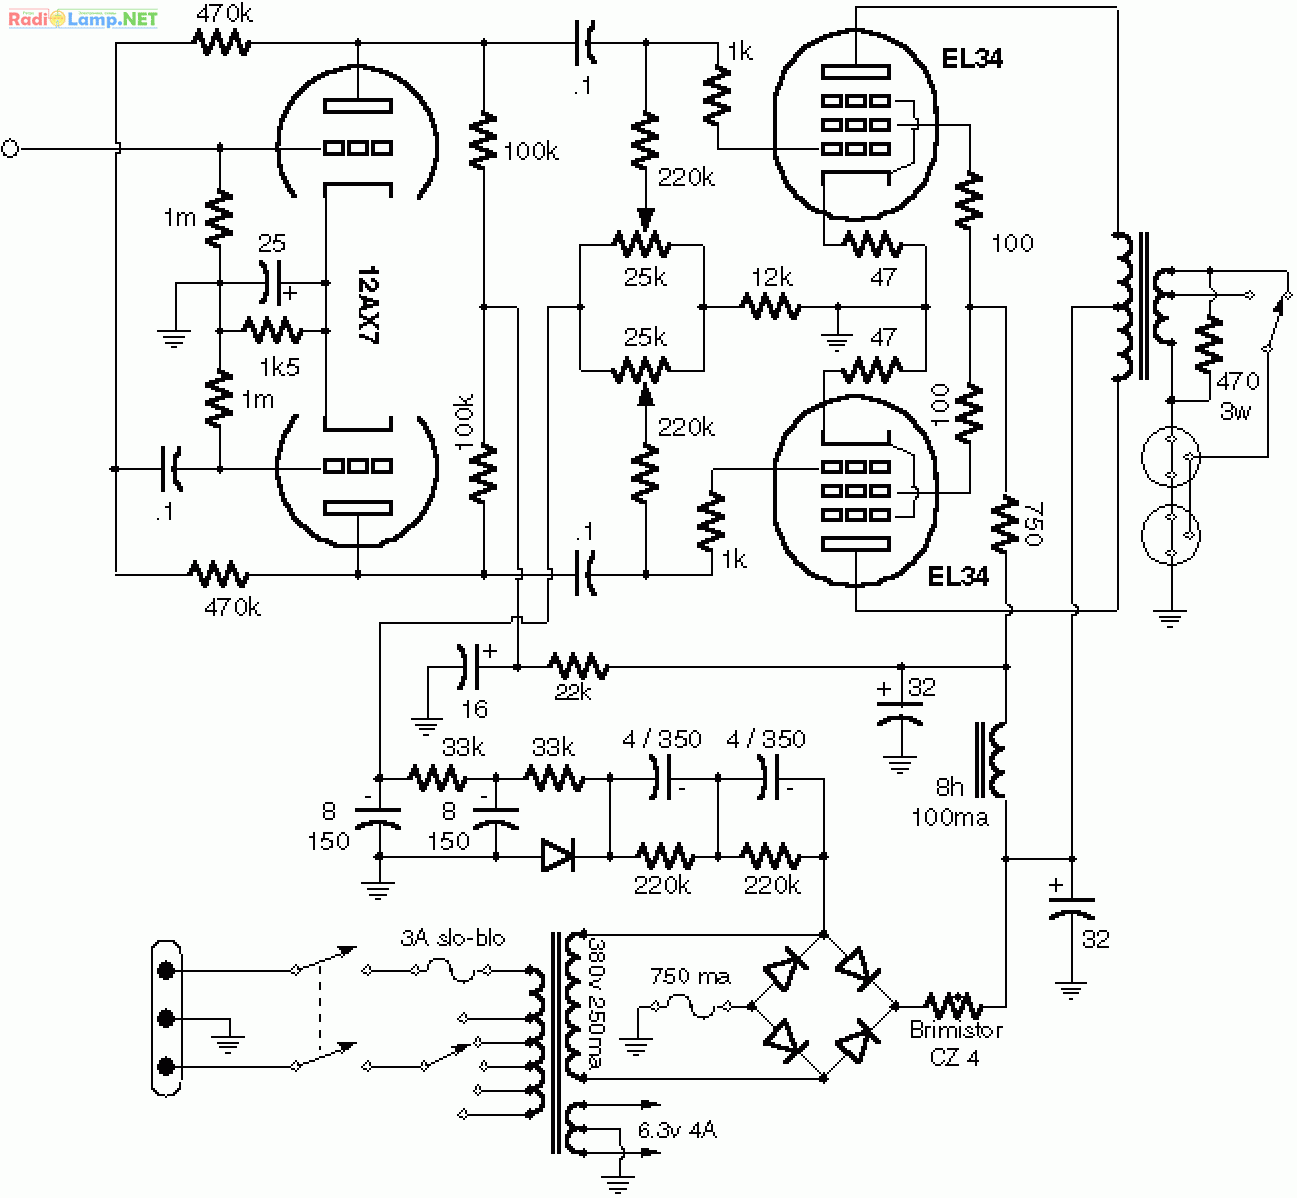 wiring diagram 1973 airstream sovereign